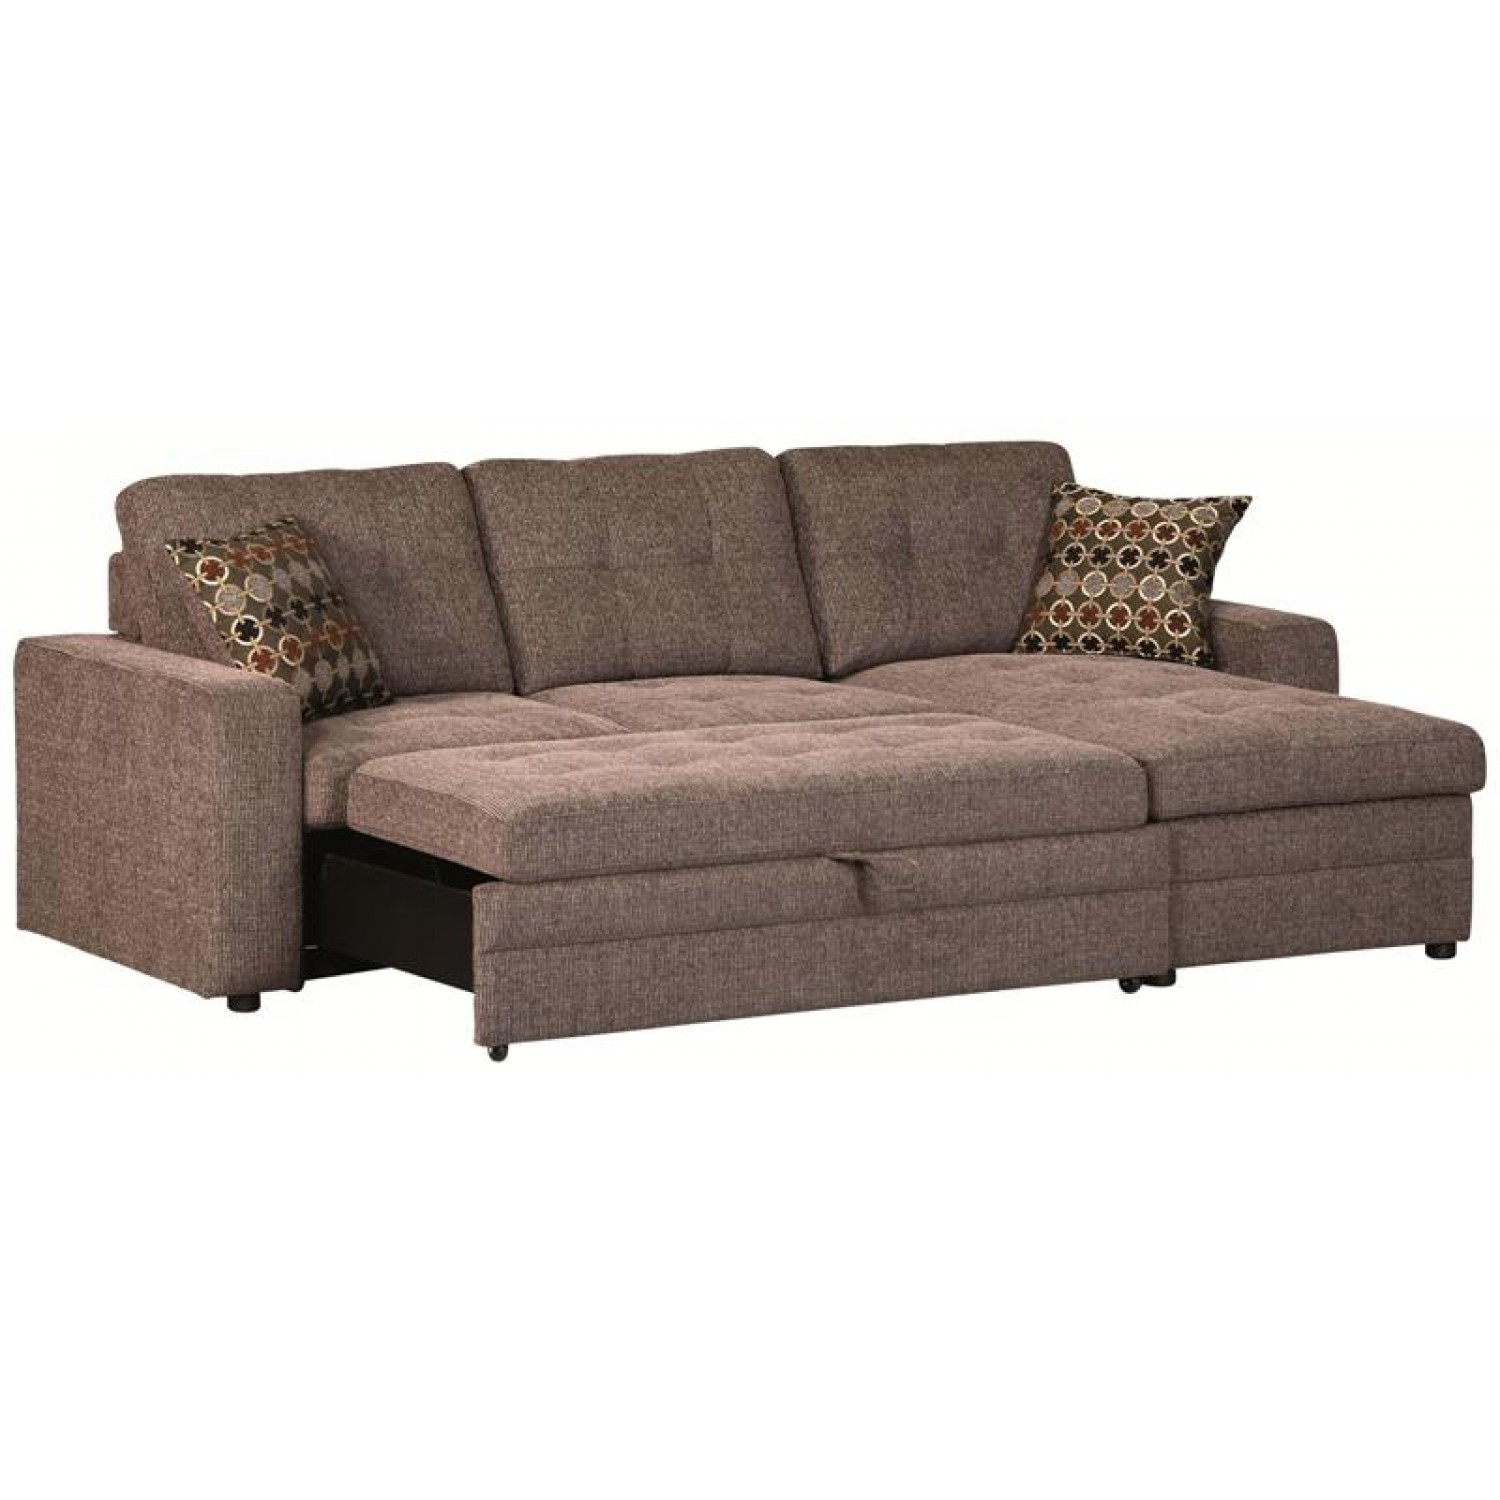 Sectional Sofa Design: Sectional Sofa With Pull Out Bed Recliner Intended For Pull Out Beds Sectional Sofas (Image 9 of 10)